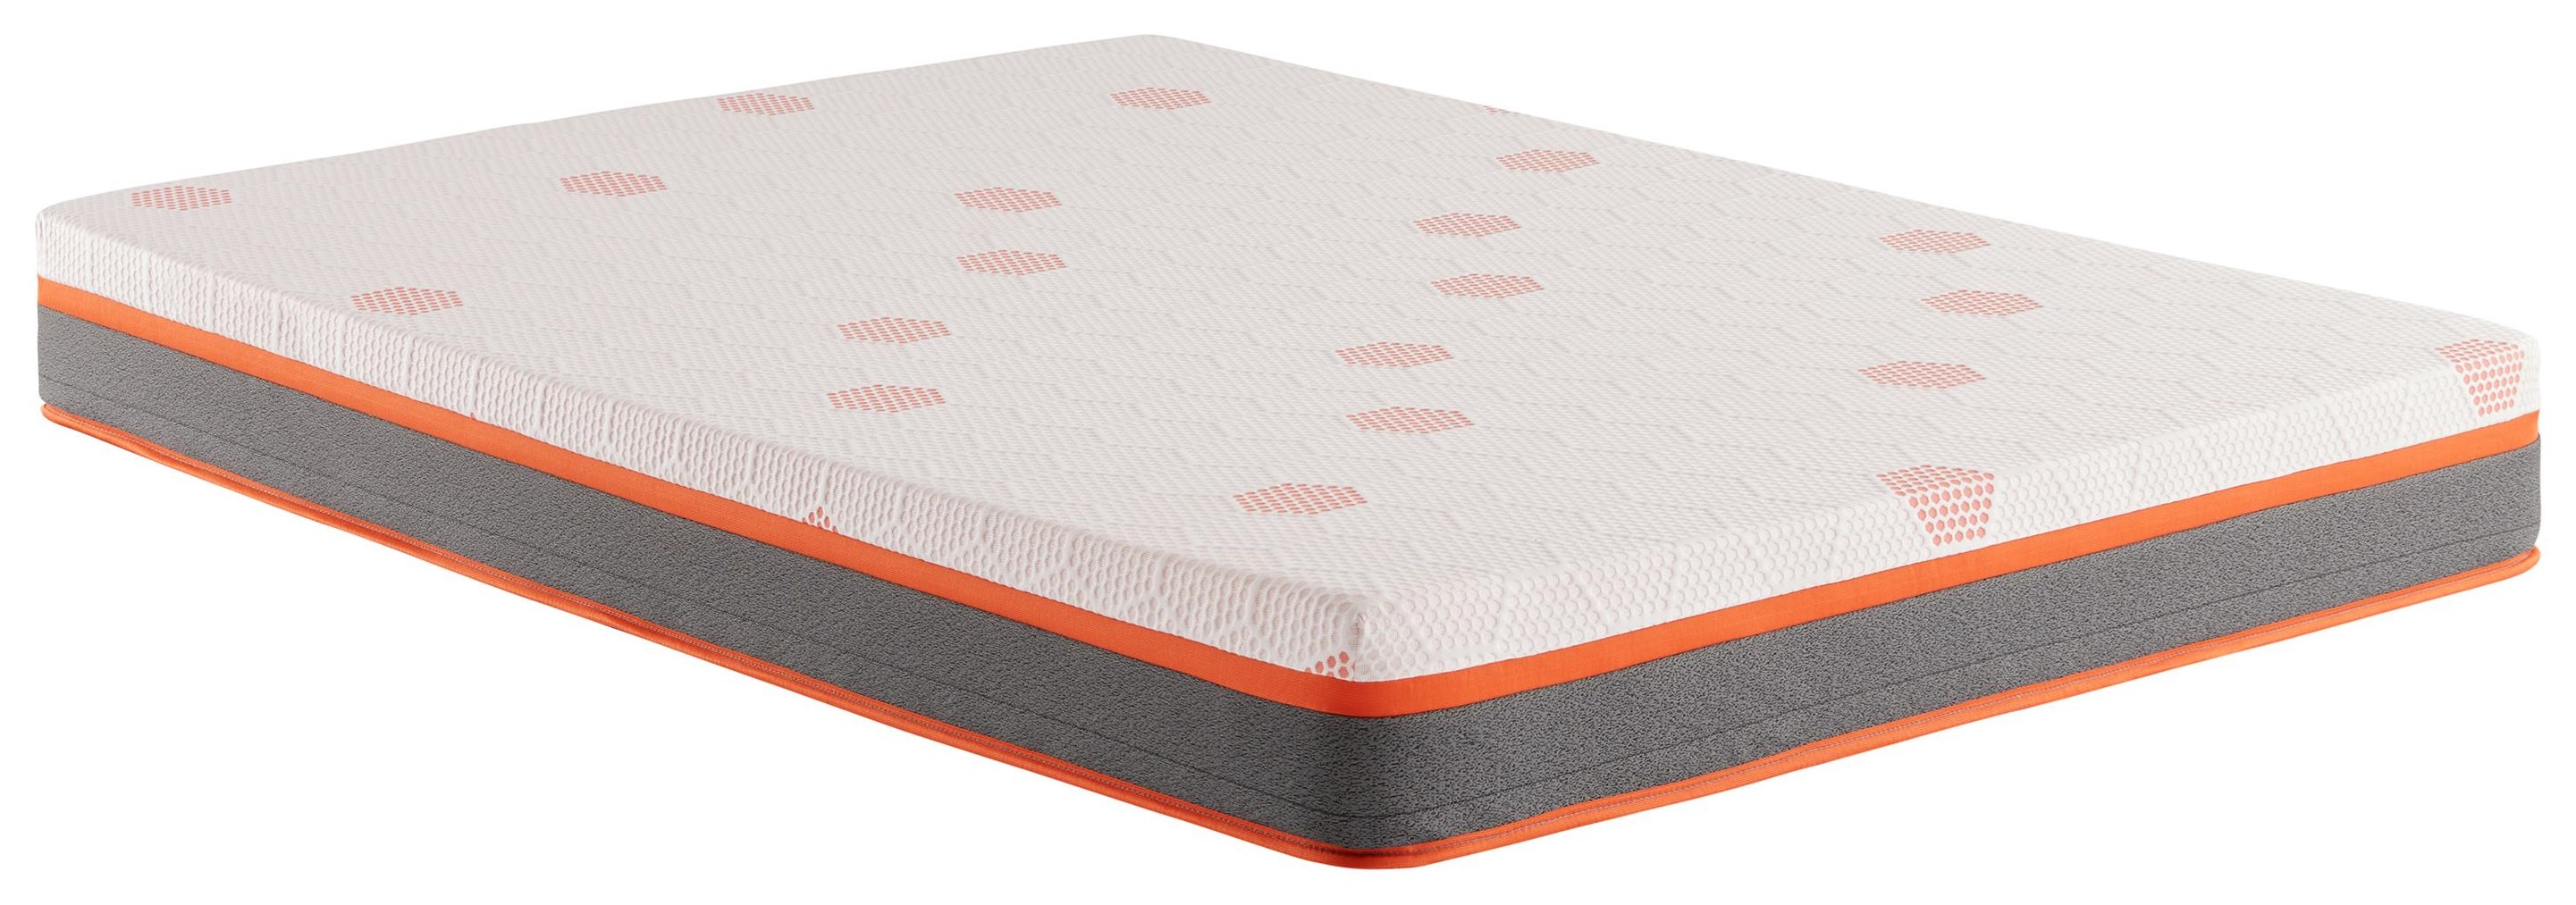 "Sutter's Landing 8"" Queen Memory Foam Mattress by Corsicana at Beck's Furniture"